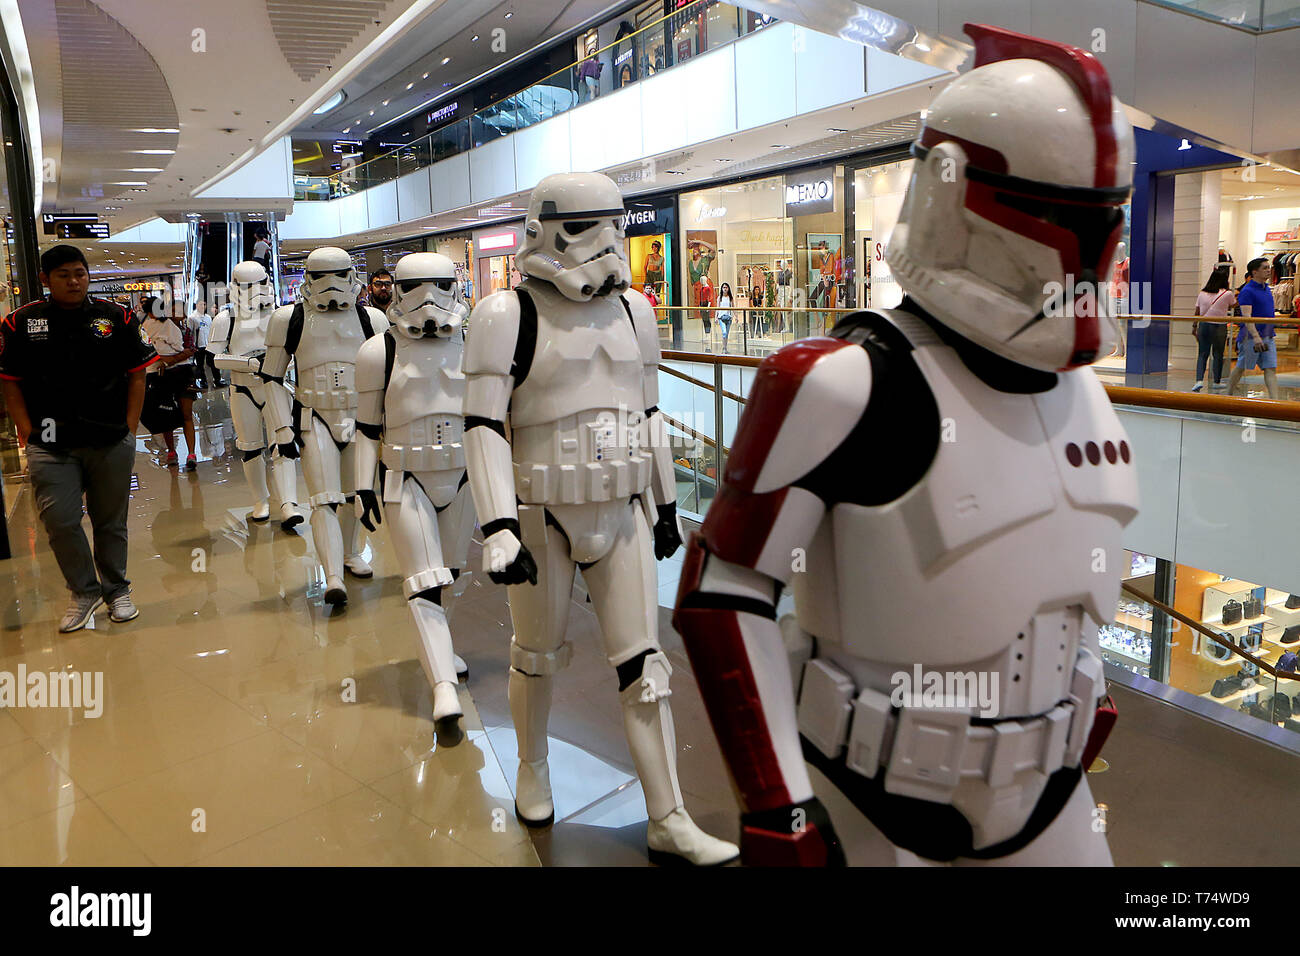 Taguig City, Philippines. 4th May, 2019. People dressed as Star Wars characters participate in the Star Wars Day in a mall in Taguig, the Philippines, May 4, 2019. The Star Wars Day is celebrated on May 4 every year by the fans of the sci-fi movie series in different parts of the world. Credit: ROUELLE UMALI/Xinhua/Alamy Live News - Stock Image